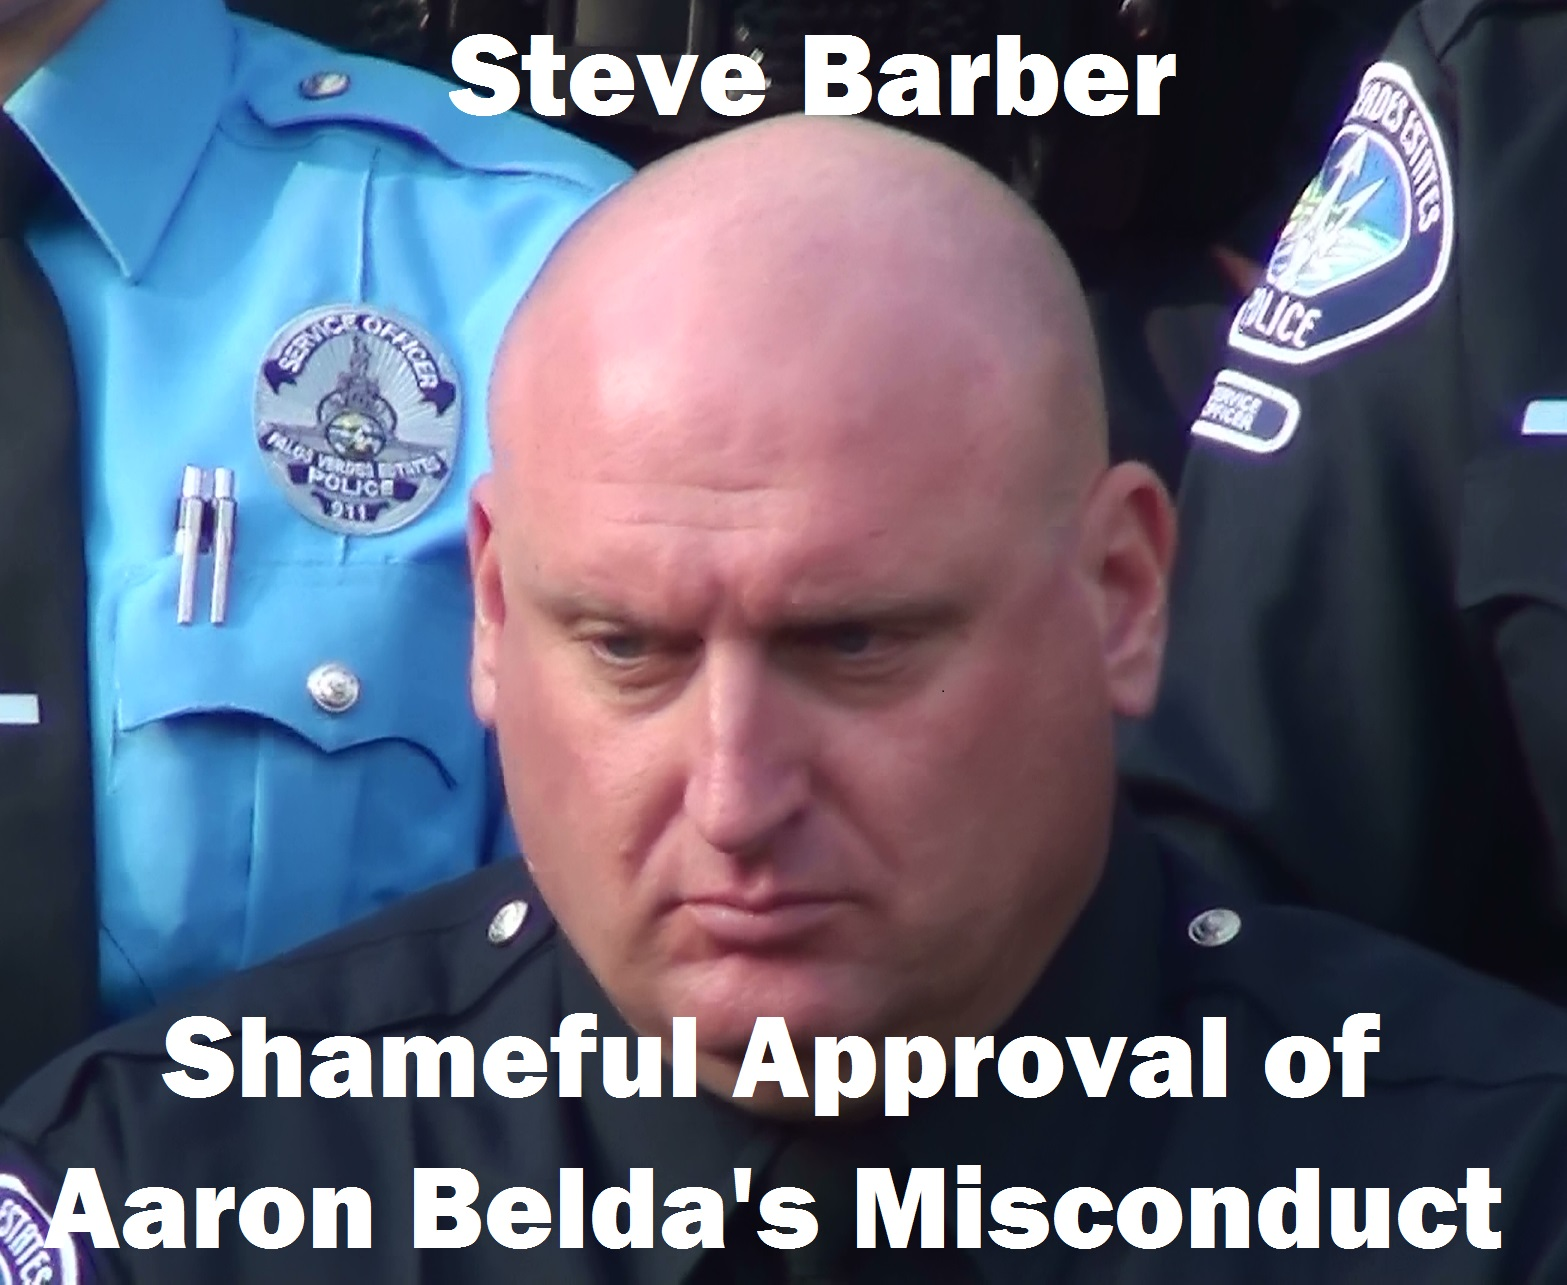 Barber Steve Photo Day Headshot 09-22-2015 - Cropped & Annotated